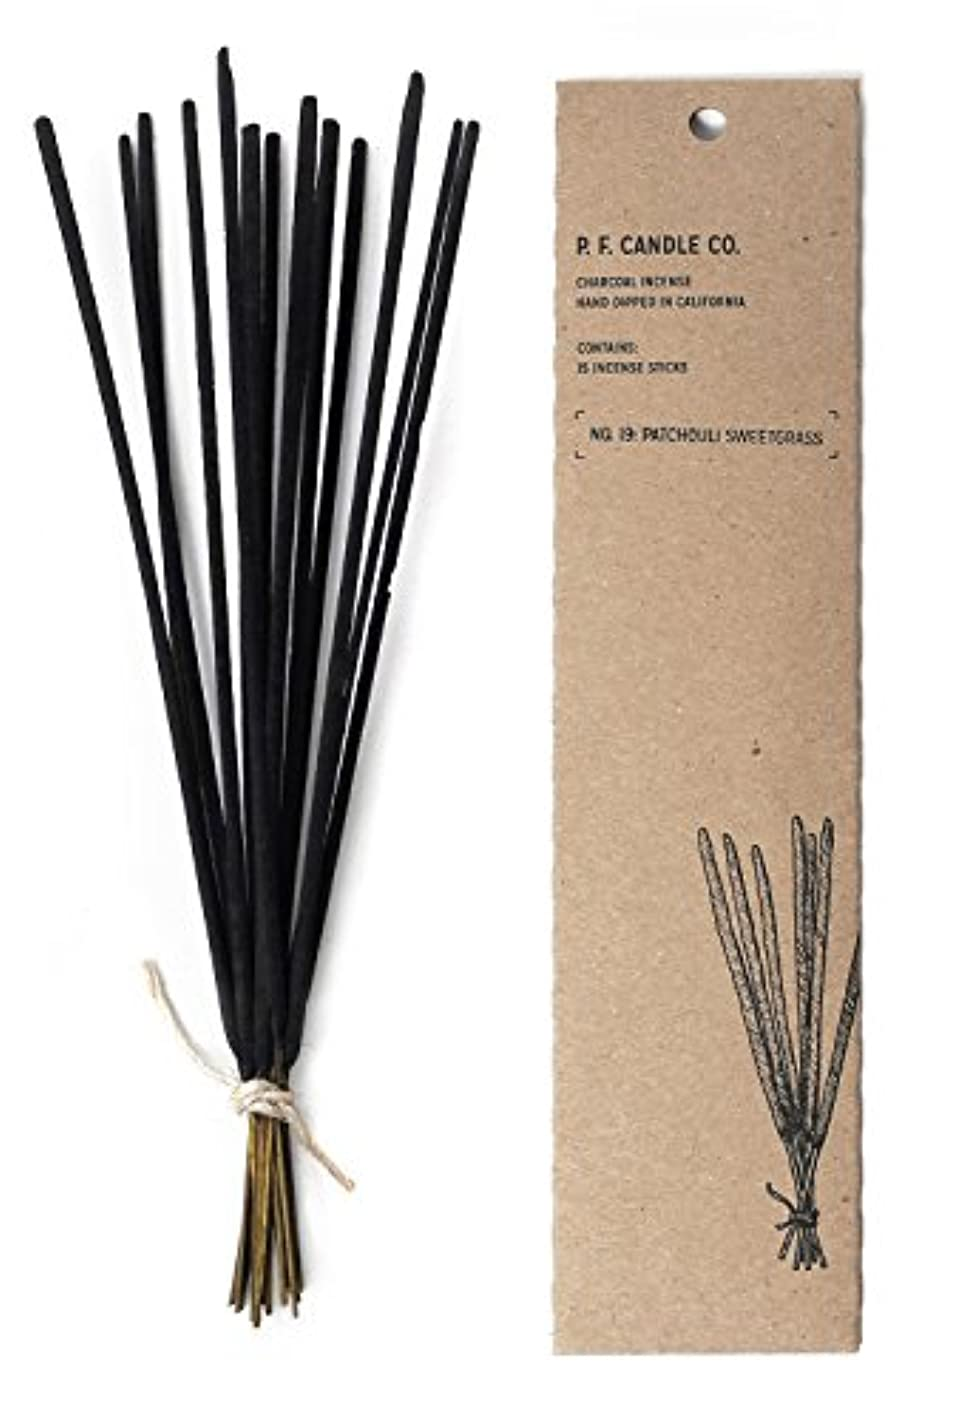 p.f. Candle Co。 – No。19 : Patchouli Sweetgrass Incense 2-Pack